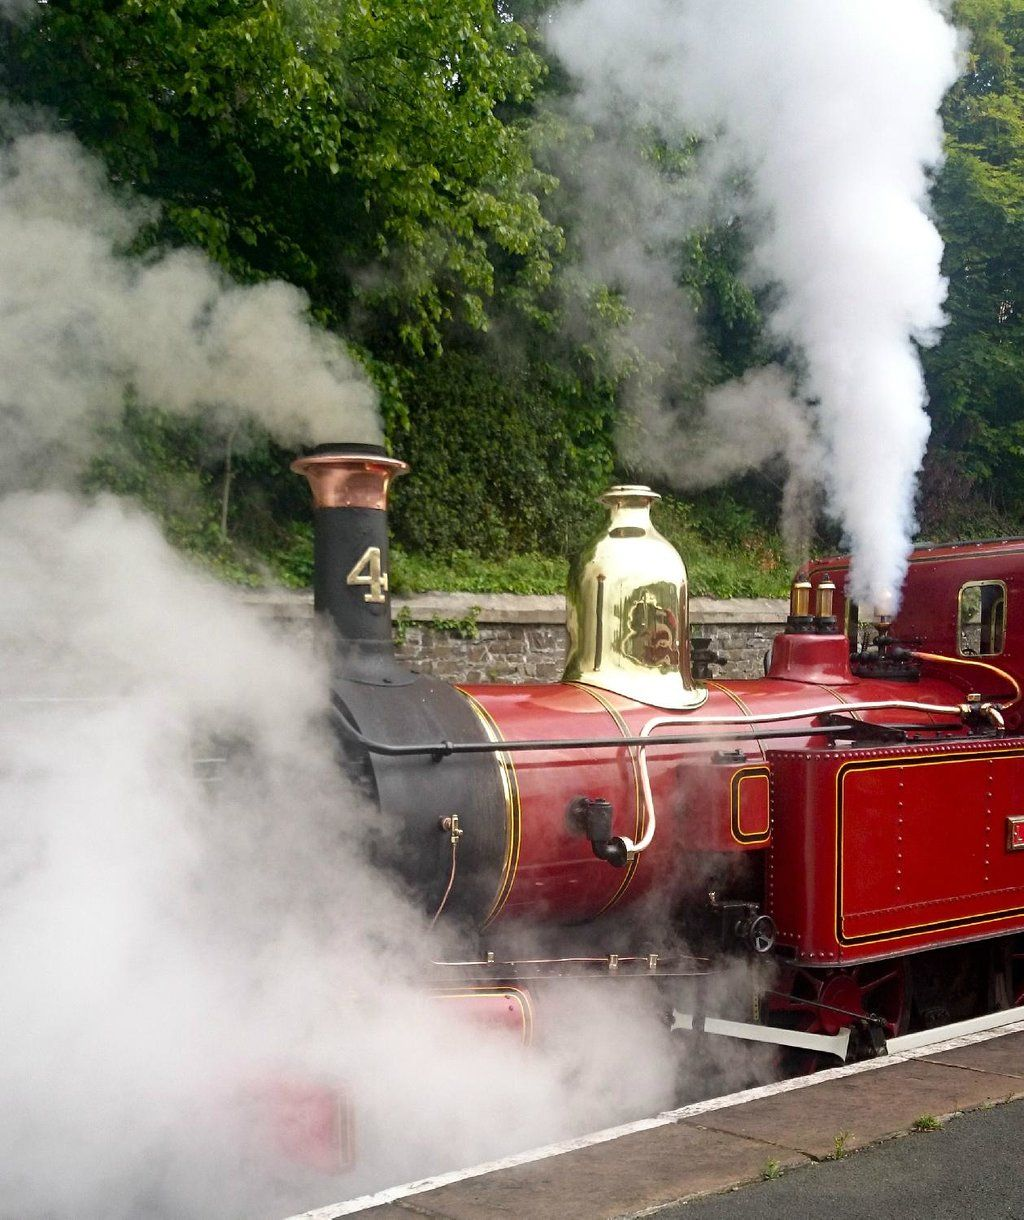 Isle of Man Bus and Rail (Douglas): Address, Phone Number, Top-Rated Other Reviews - TripAdvisor